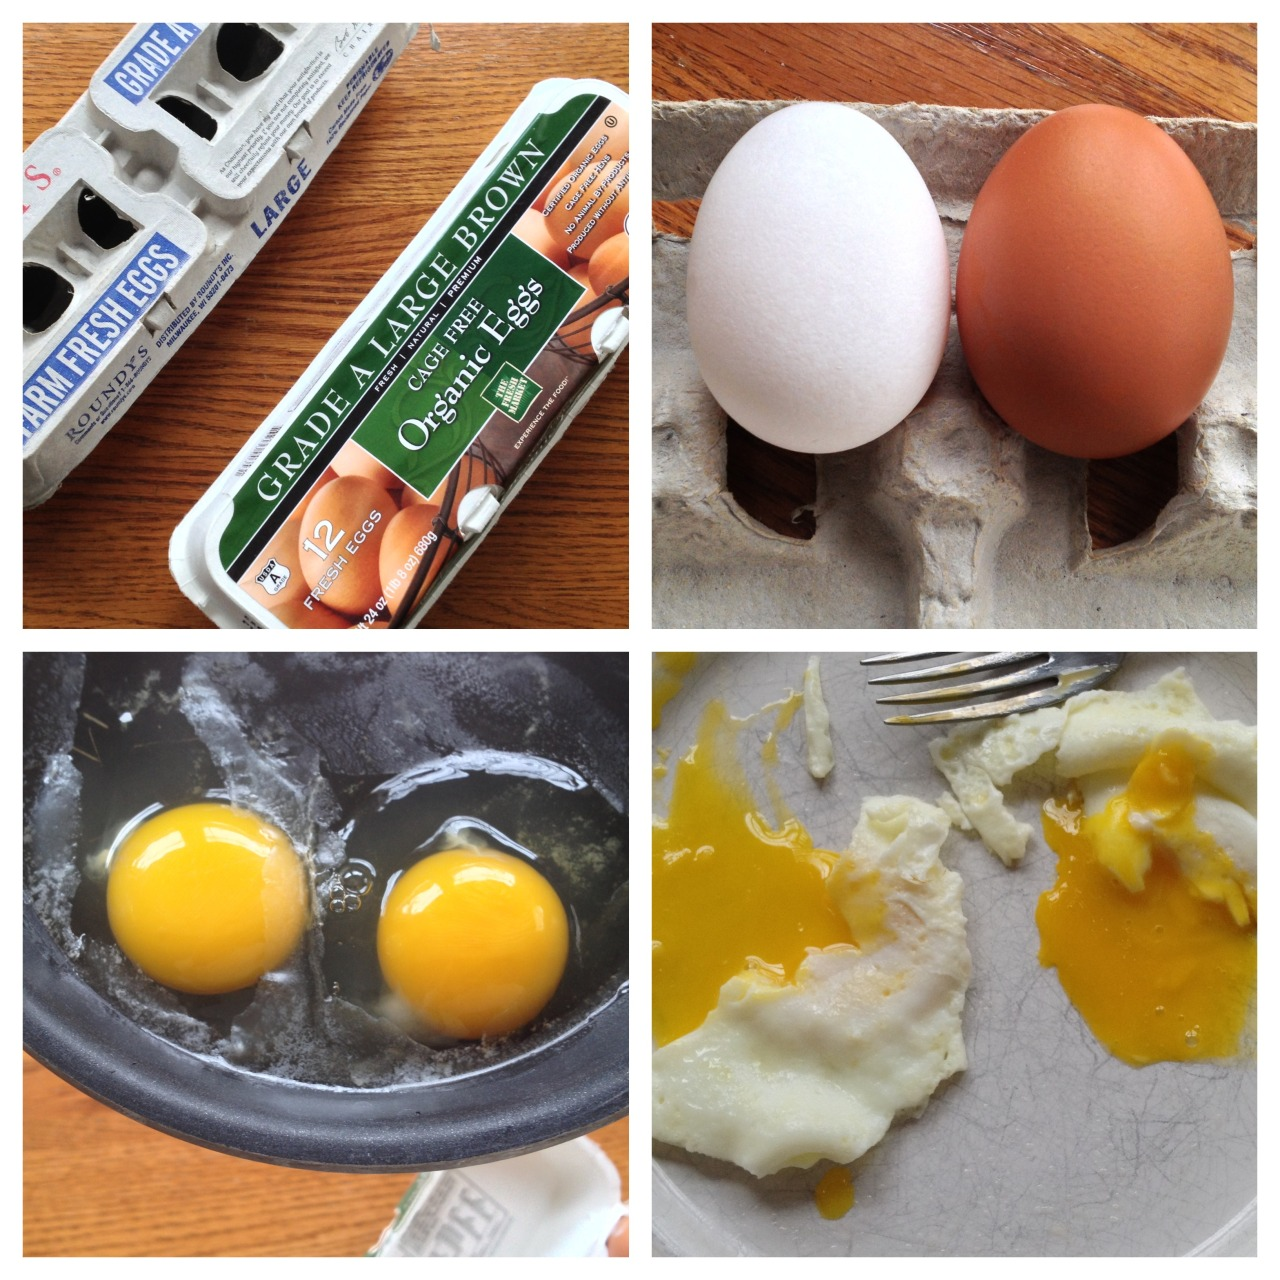 So I conducted an eggs-periment this morning for breakfast. What is the difference between a regular grocery market egg and a organic/cage-free egg? Price is certainly one thing. But taste? Kind of. If you blind tested me, I may not know which is which. But Kristin and I both could tell that the organic egg had a richer golden color. I can't prove that it was because of being organic. Maybe something else in the chickens diet caused the deeper color. I did notice (and from my past experience) that regular eggs have a more fragile shell when you break them. Thin and brittle. Not so with the organic eggs. I would say that MAYBE taste and texture was a little better with the organic egg. But best yet - it should have higher nutritional value and omega 3's and no hormones and antibiotics. Those will probably get us some day. Anyways, thought someone would find this interesting. Note that a egg may be organic, but not cage-free. I pictured my cage-free chicken roaming a field outside the barn in the sunshine which made me feel good. I bet it was a healthy and happy chicken at one time..